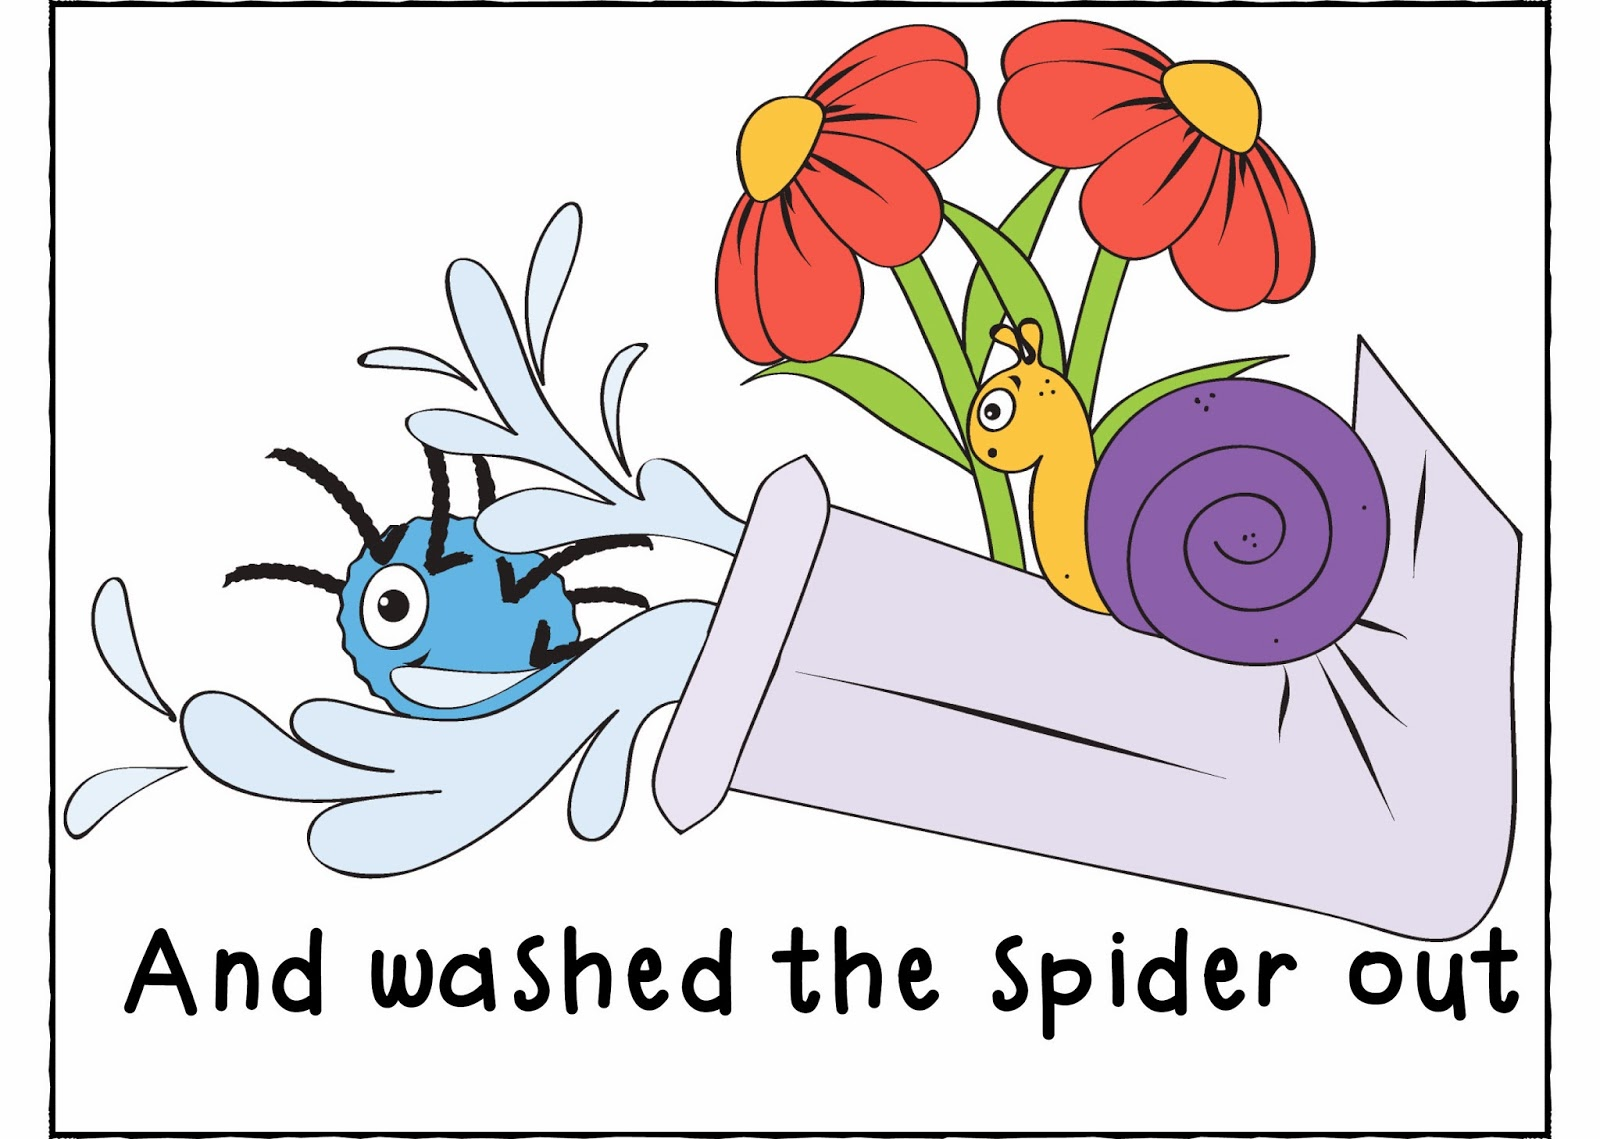 Incy wincy spider clipart.